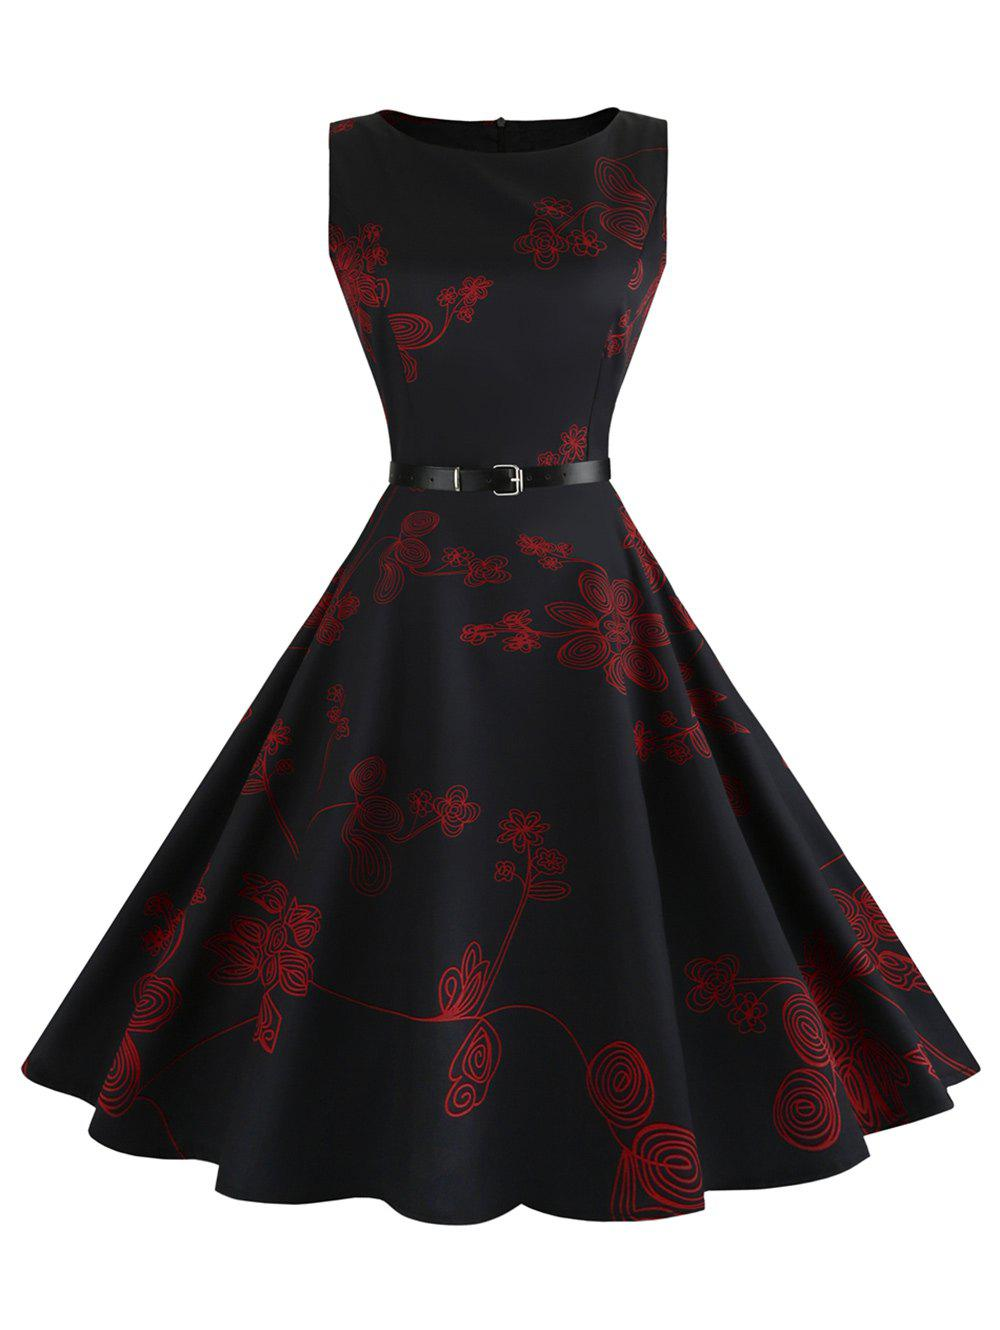 Vintage Sleeveless Floral Fit and Flare Dress - RED M